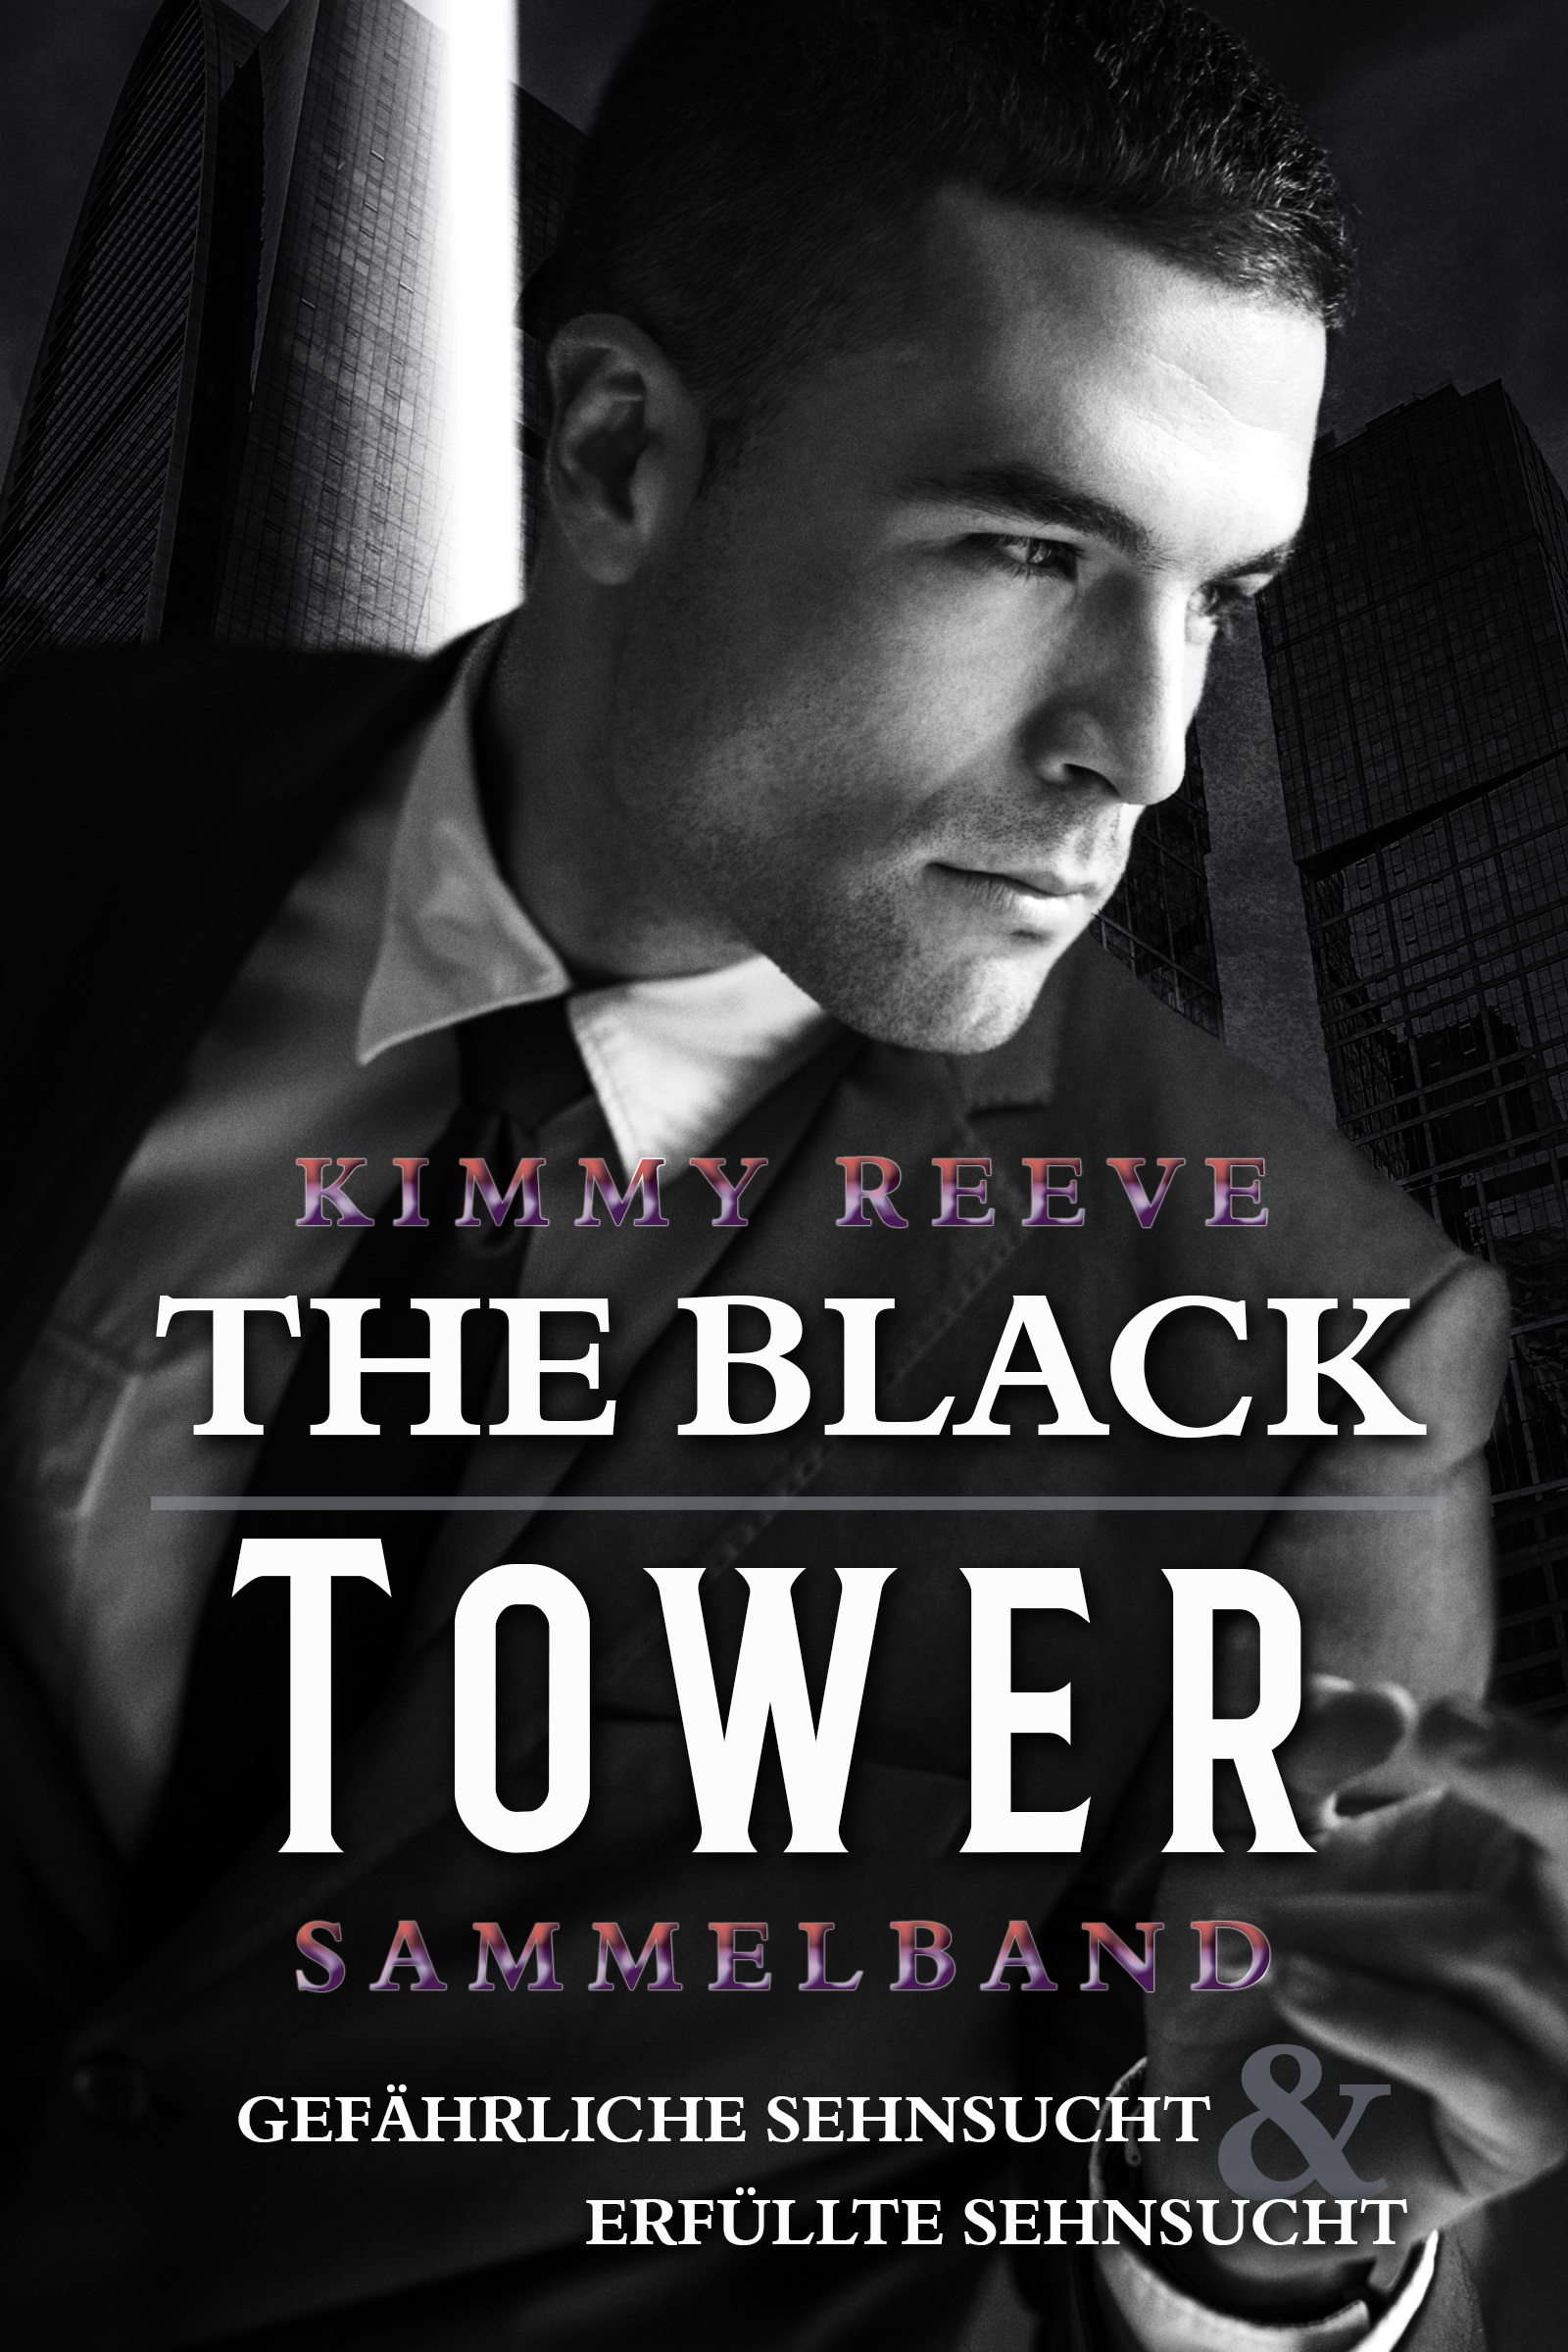 The Black Tower Sammelband ebook-1